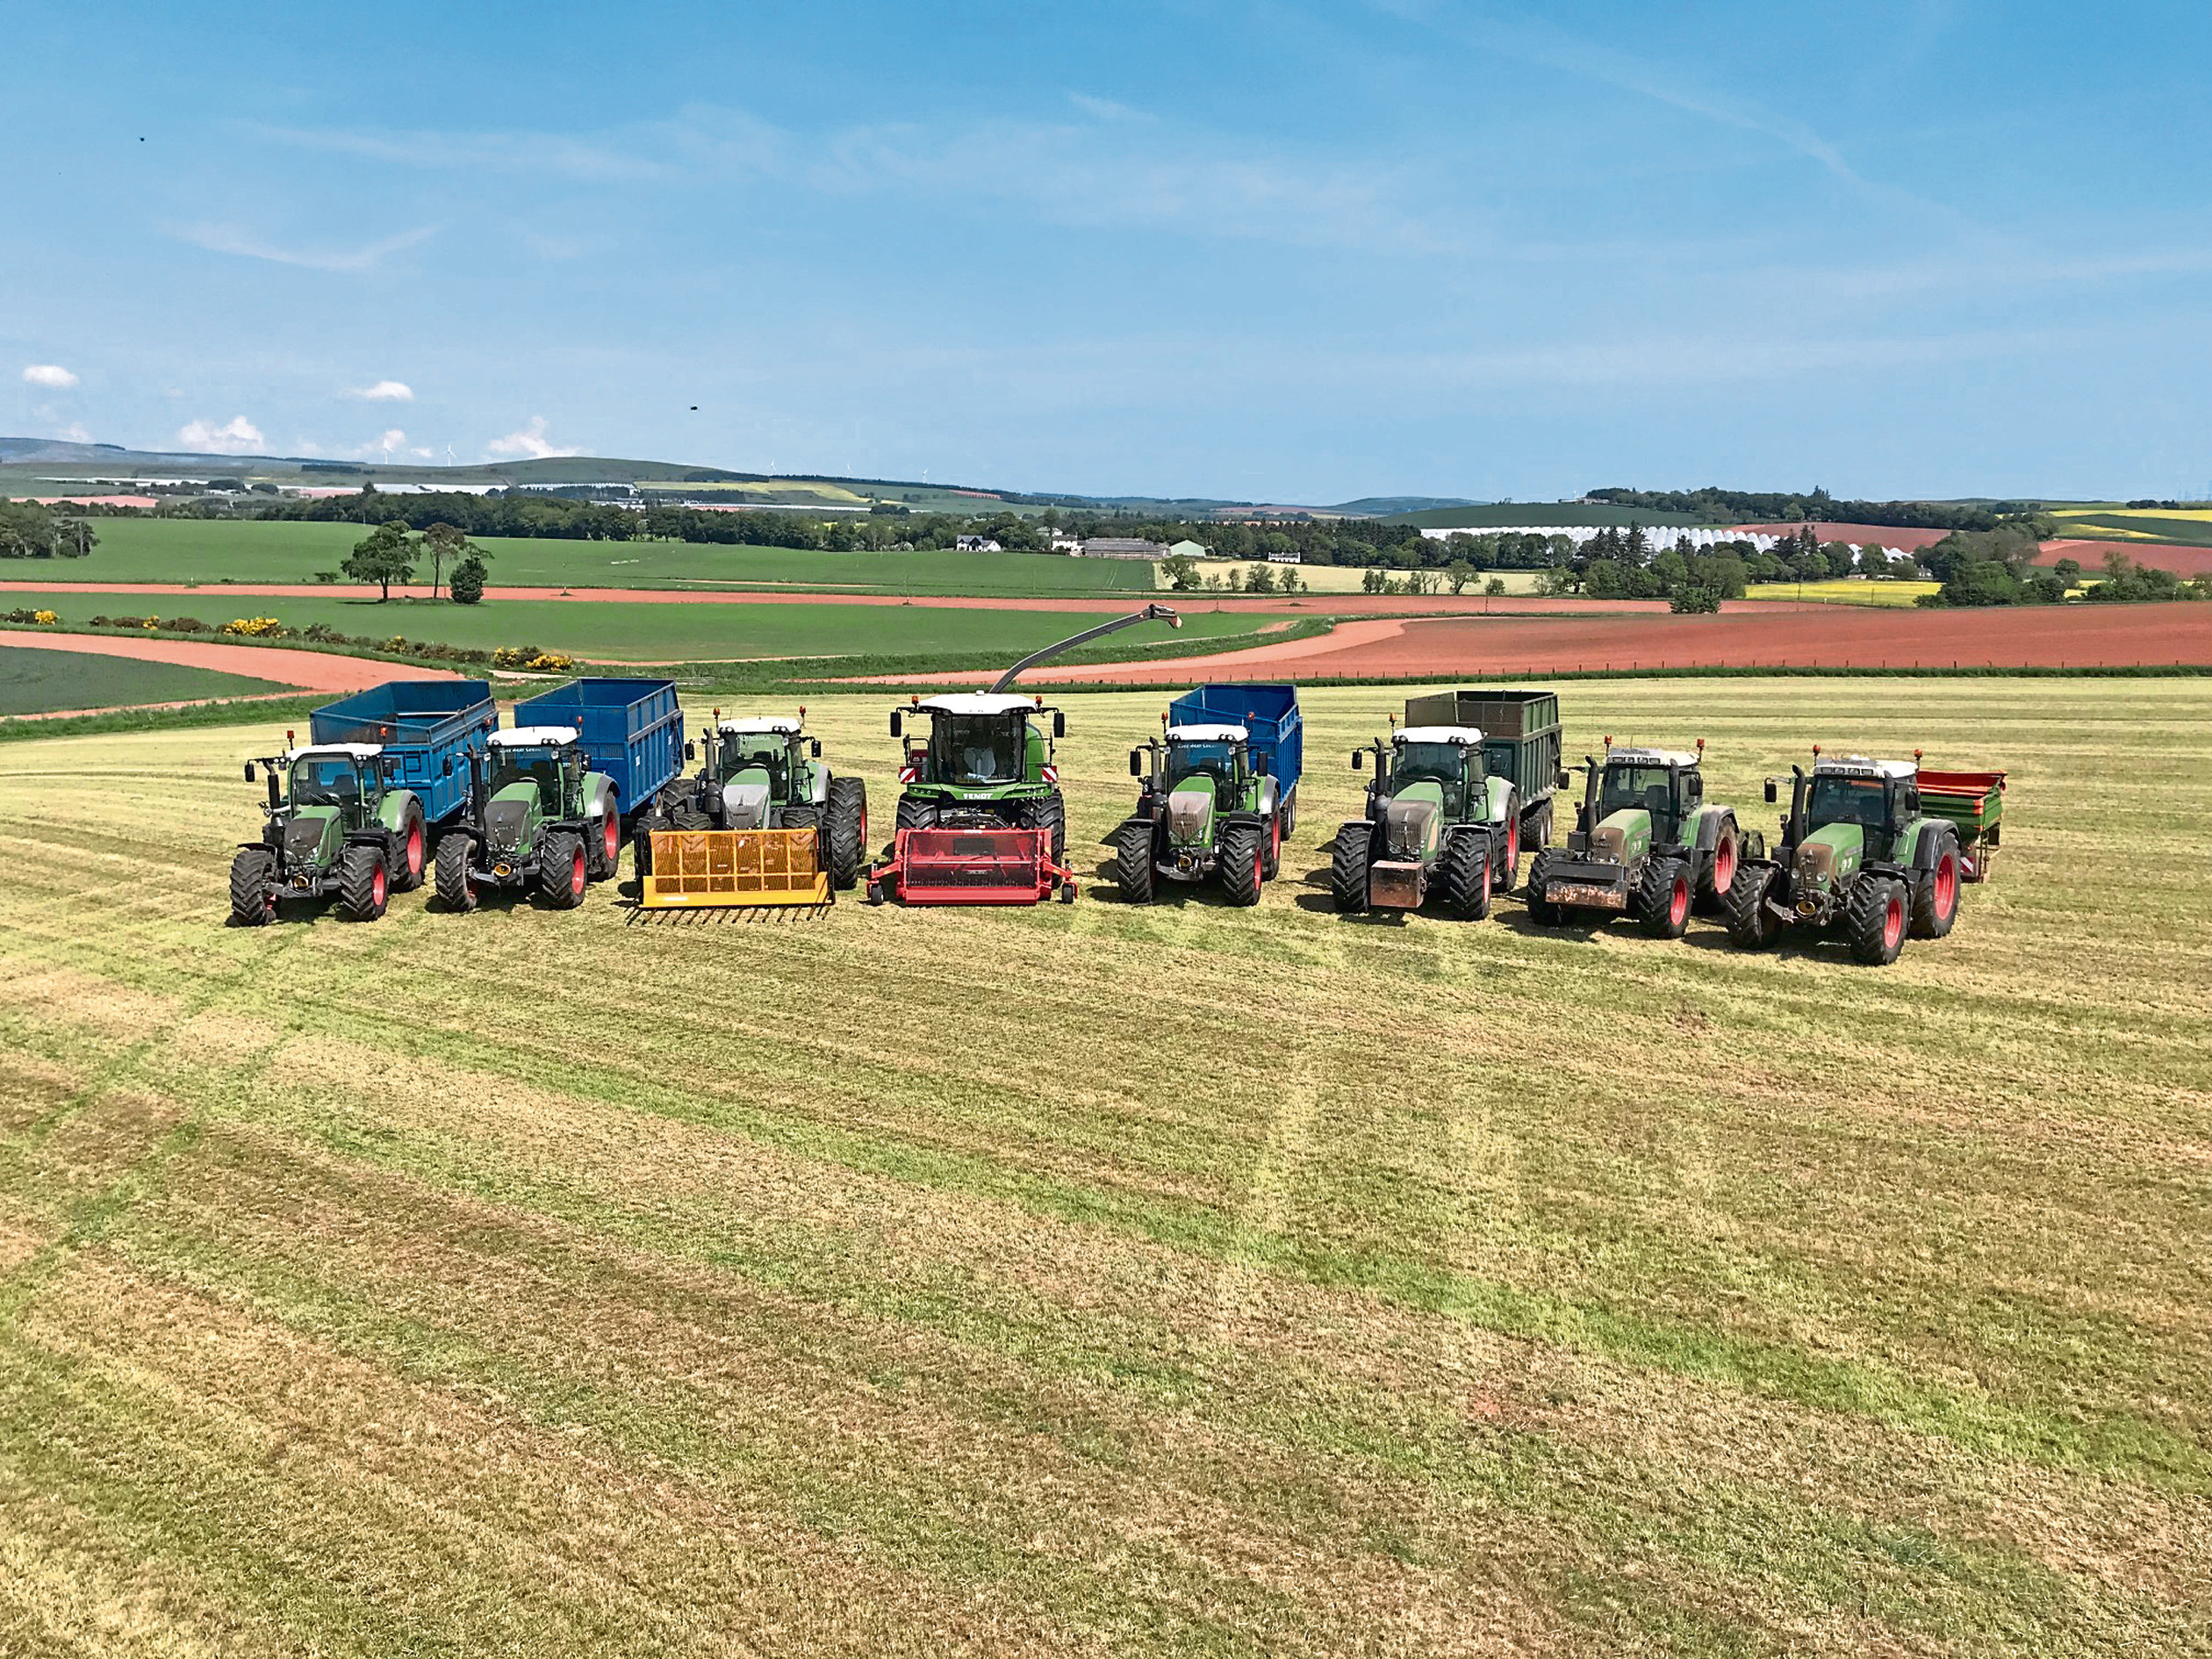 Ryan West sent in this picture of a line-up of all the Fendts after first cut silage.